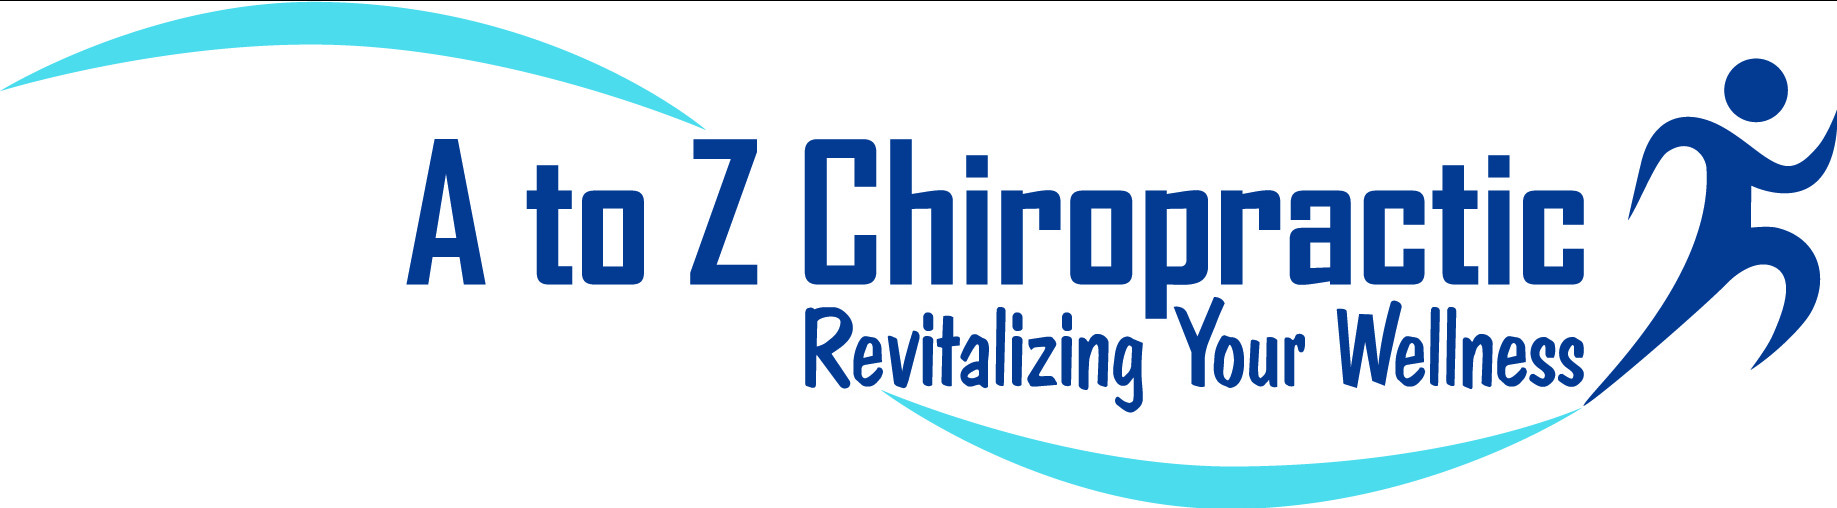 A to Z Chiropractic